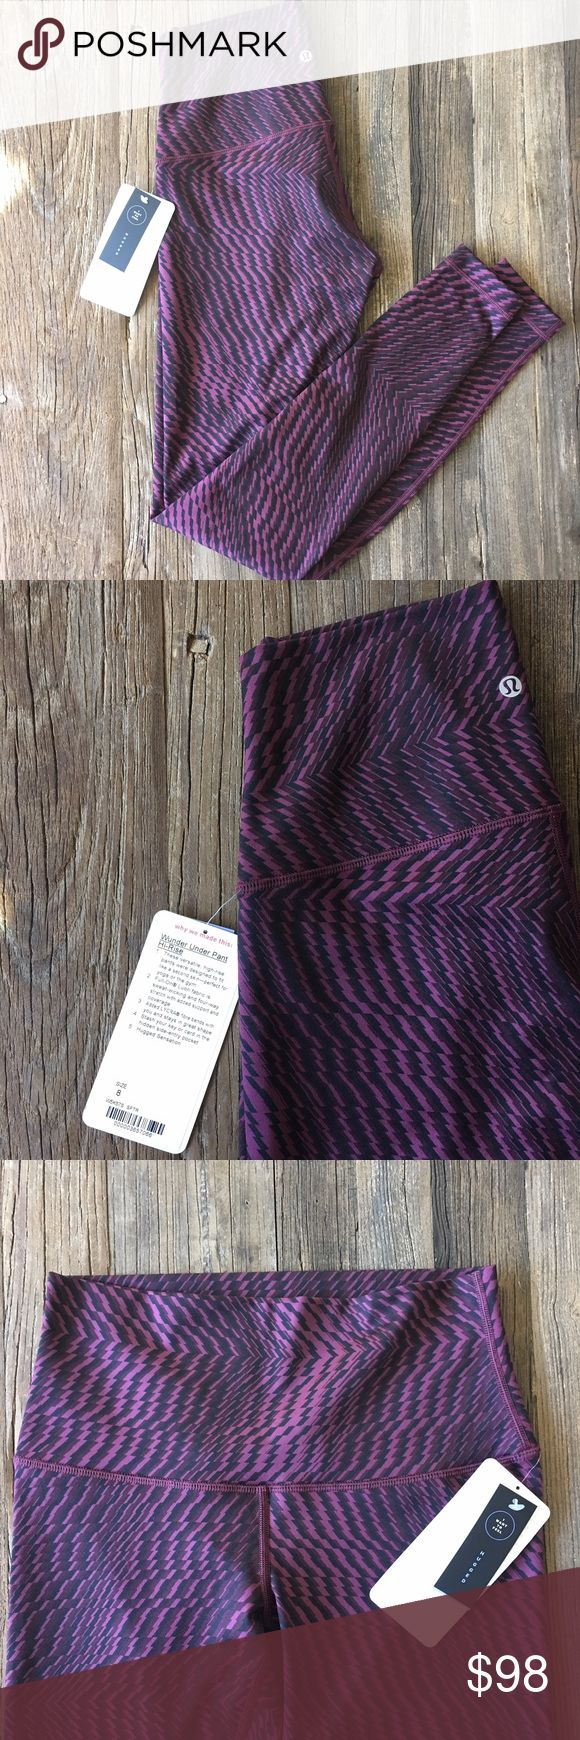 nwt//lululemon • wunder under pant (high rise) nwt//lululemon • wunder under pant (high rise) * full-on luon fabric  * color: shifted horizon/red grape/black * versatile pants; fit like second skin * perfect for yoga lululemon athletica Pants Leggings